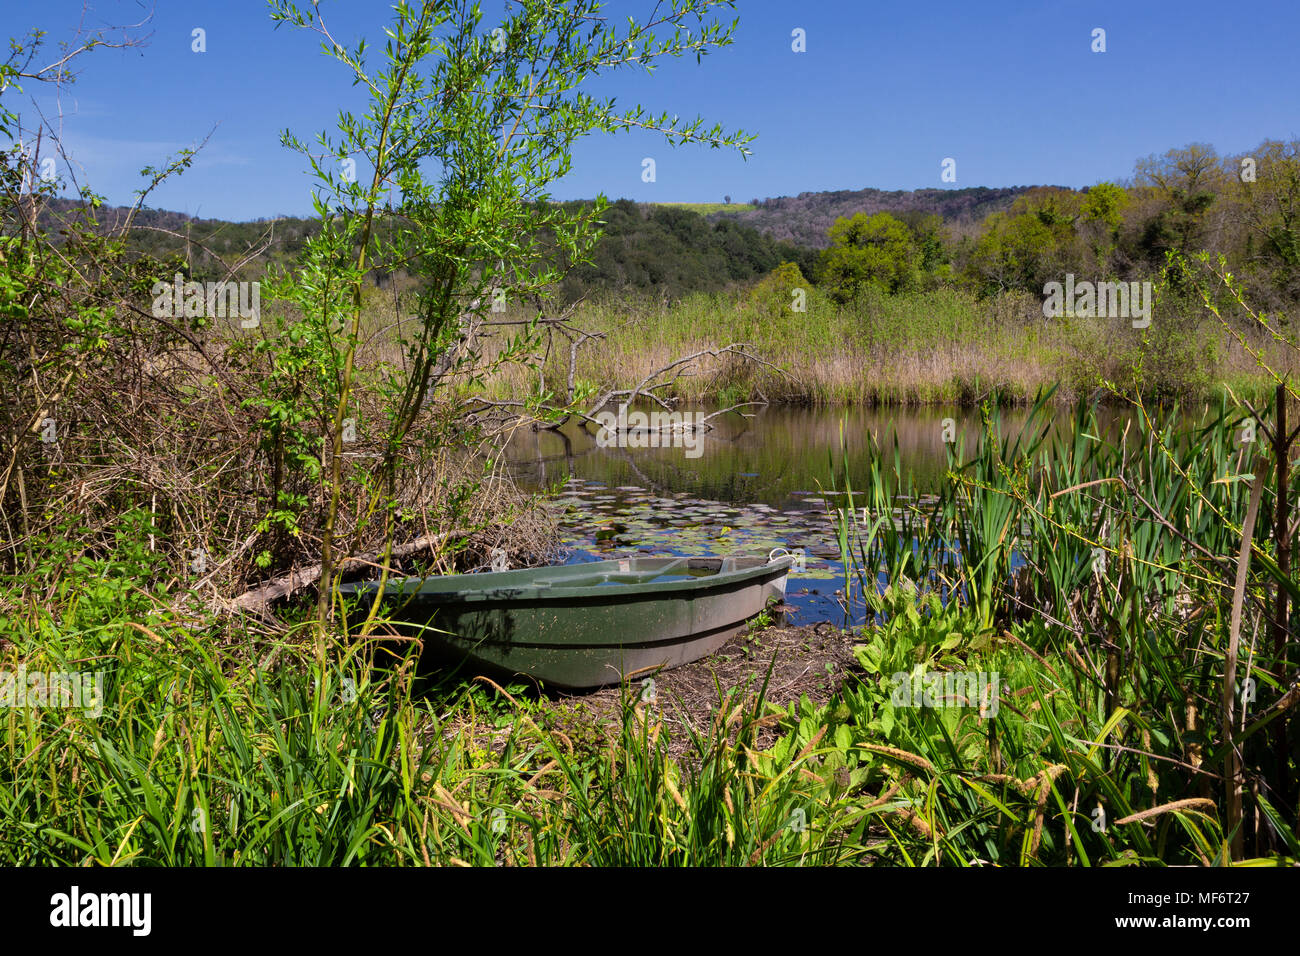 Naples (Italy) - The Cratere degli Astroni Nature Reserve is one of the few well-preserved craters of the whole Phlegraean fields - Stock Image